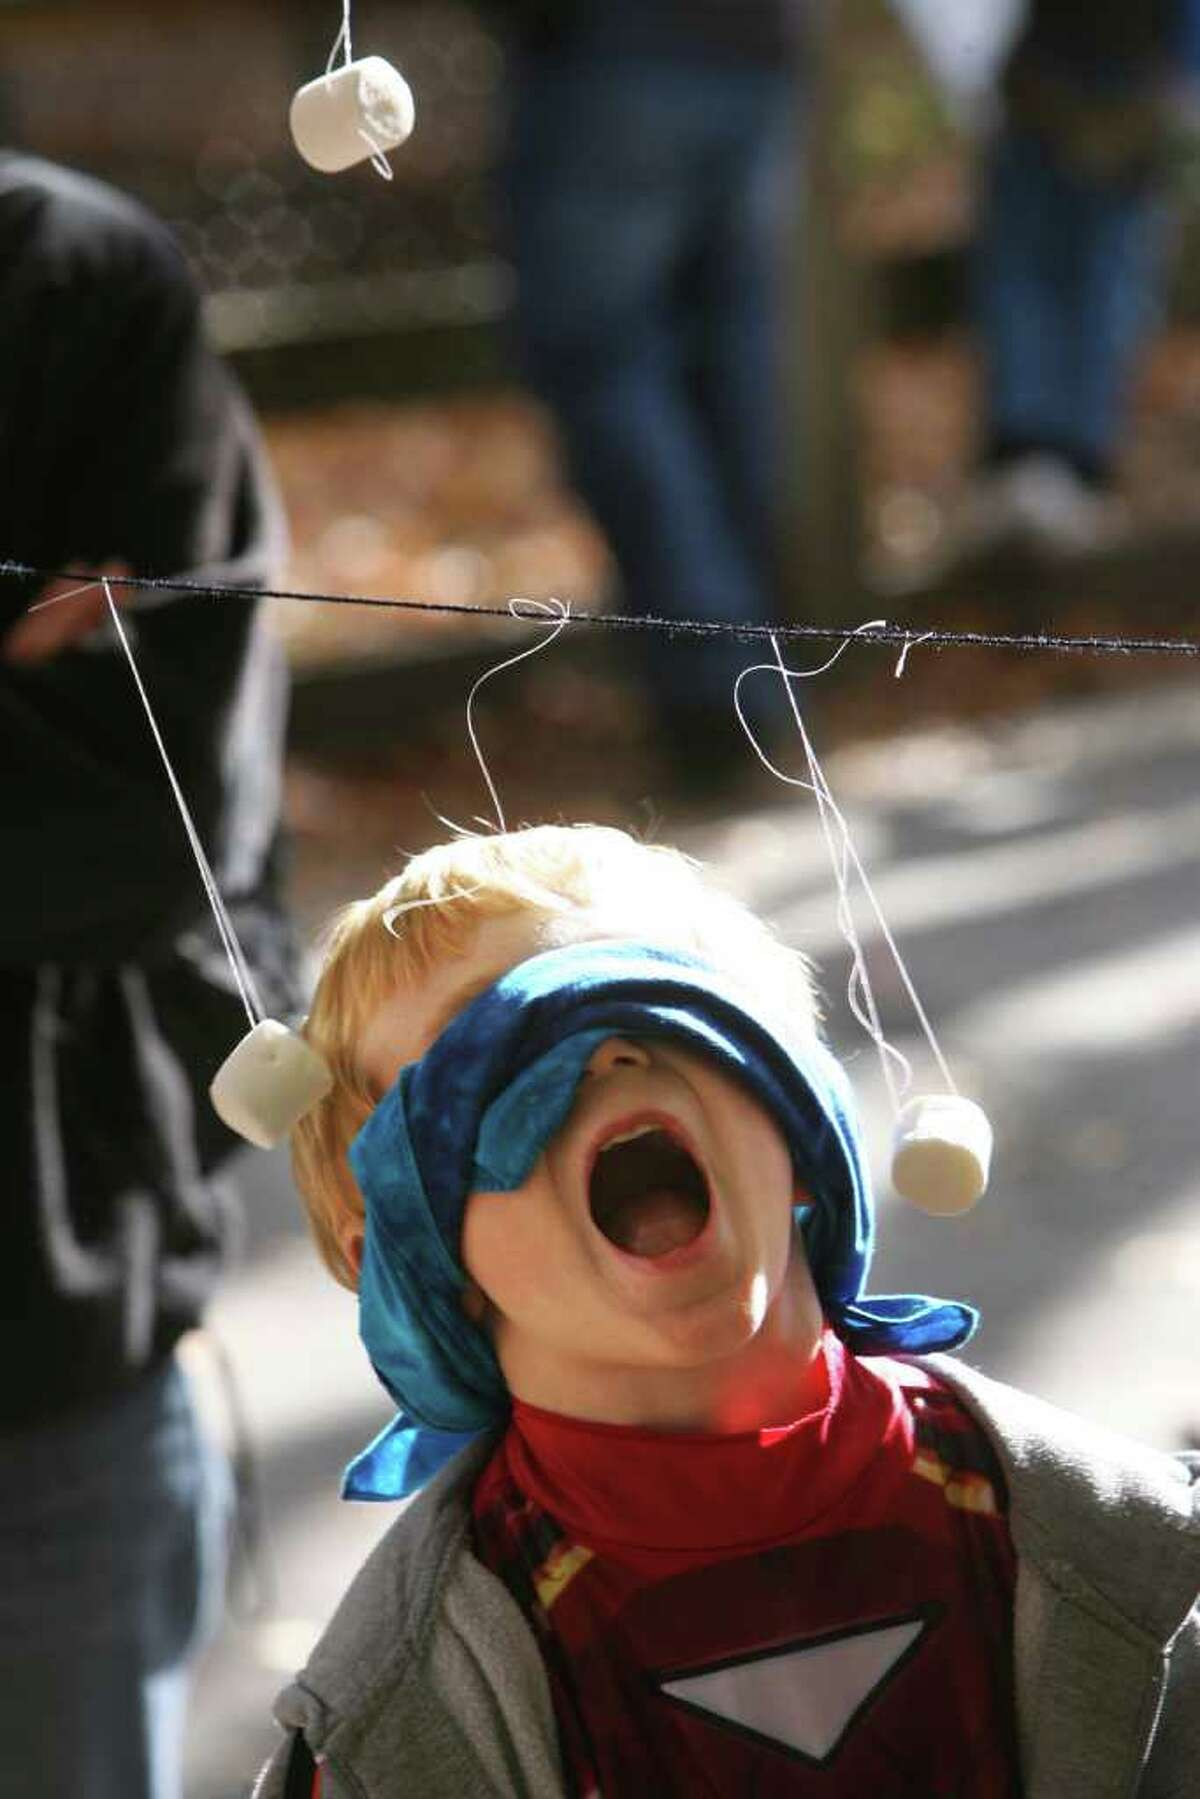 Will Eckert, 6 of Trumbull, plays a marshmallow game at the Beardsley Zoo Halloween party on Sunday, October 31, 2010.